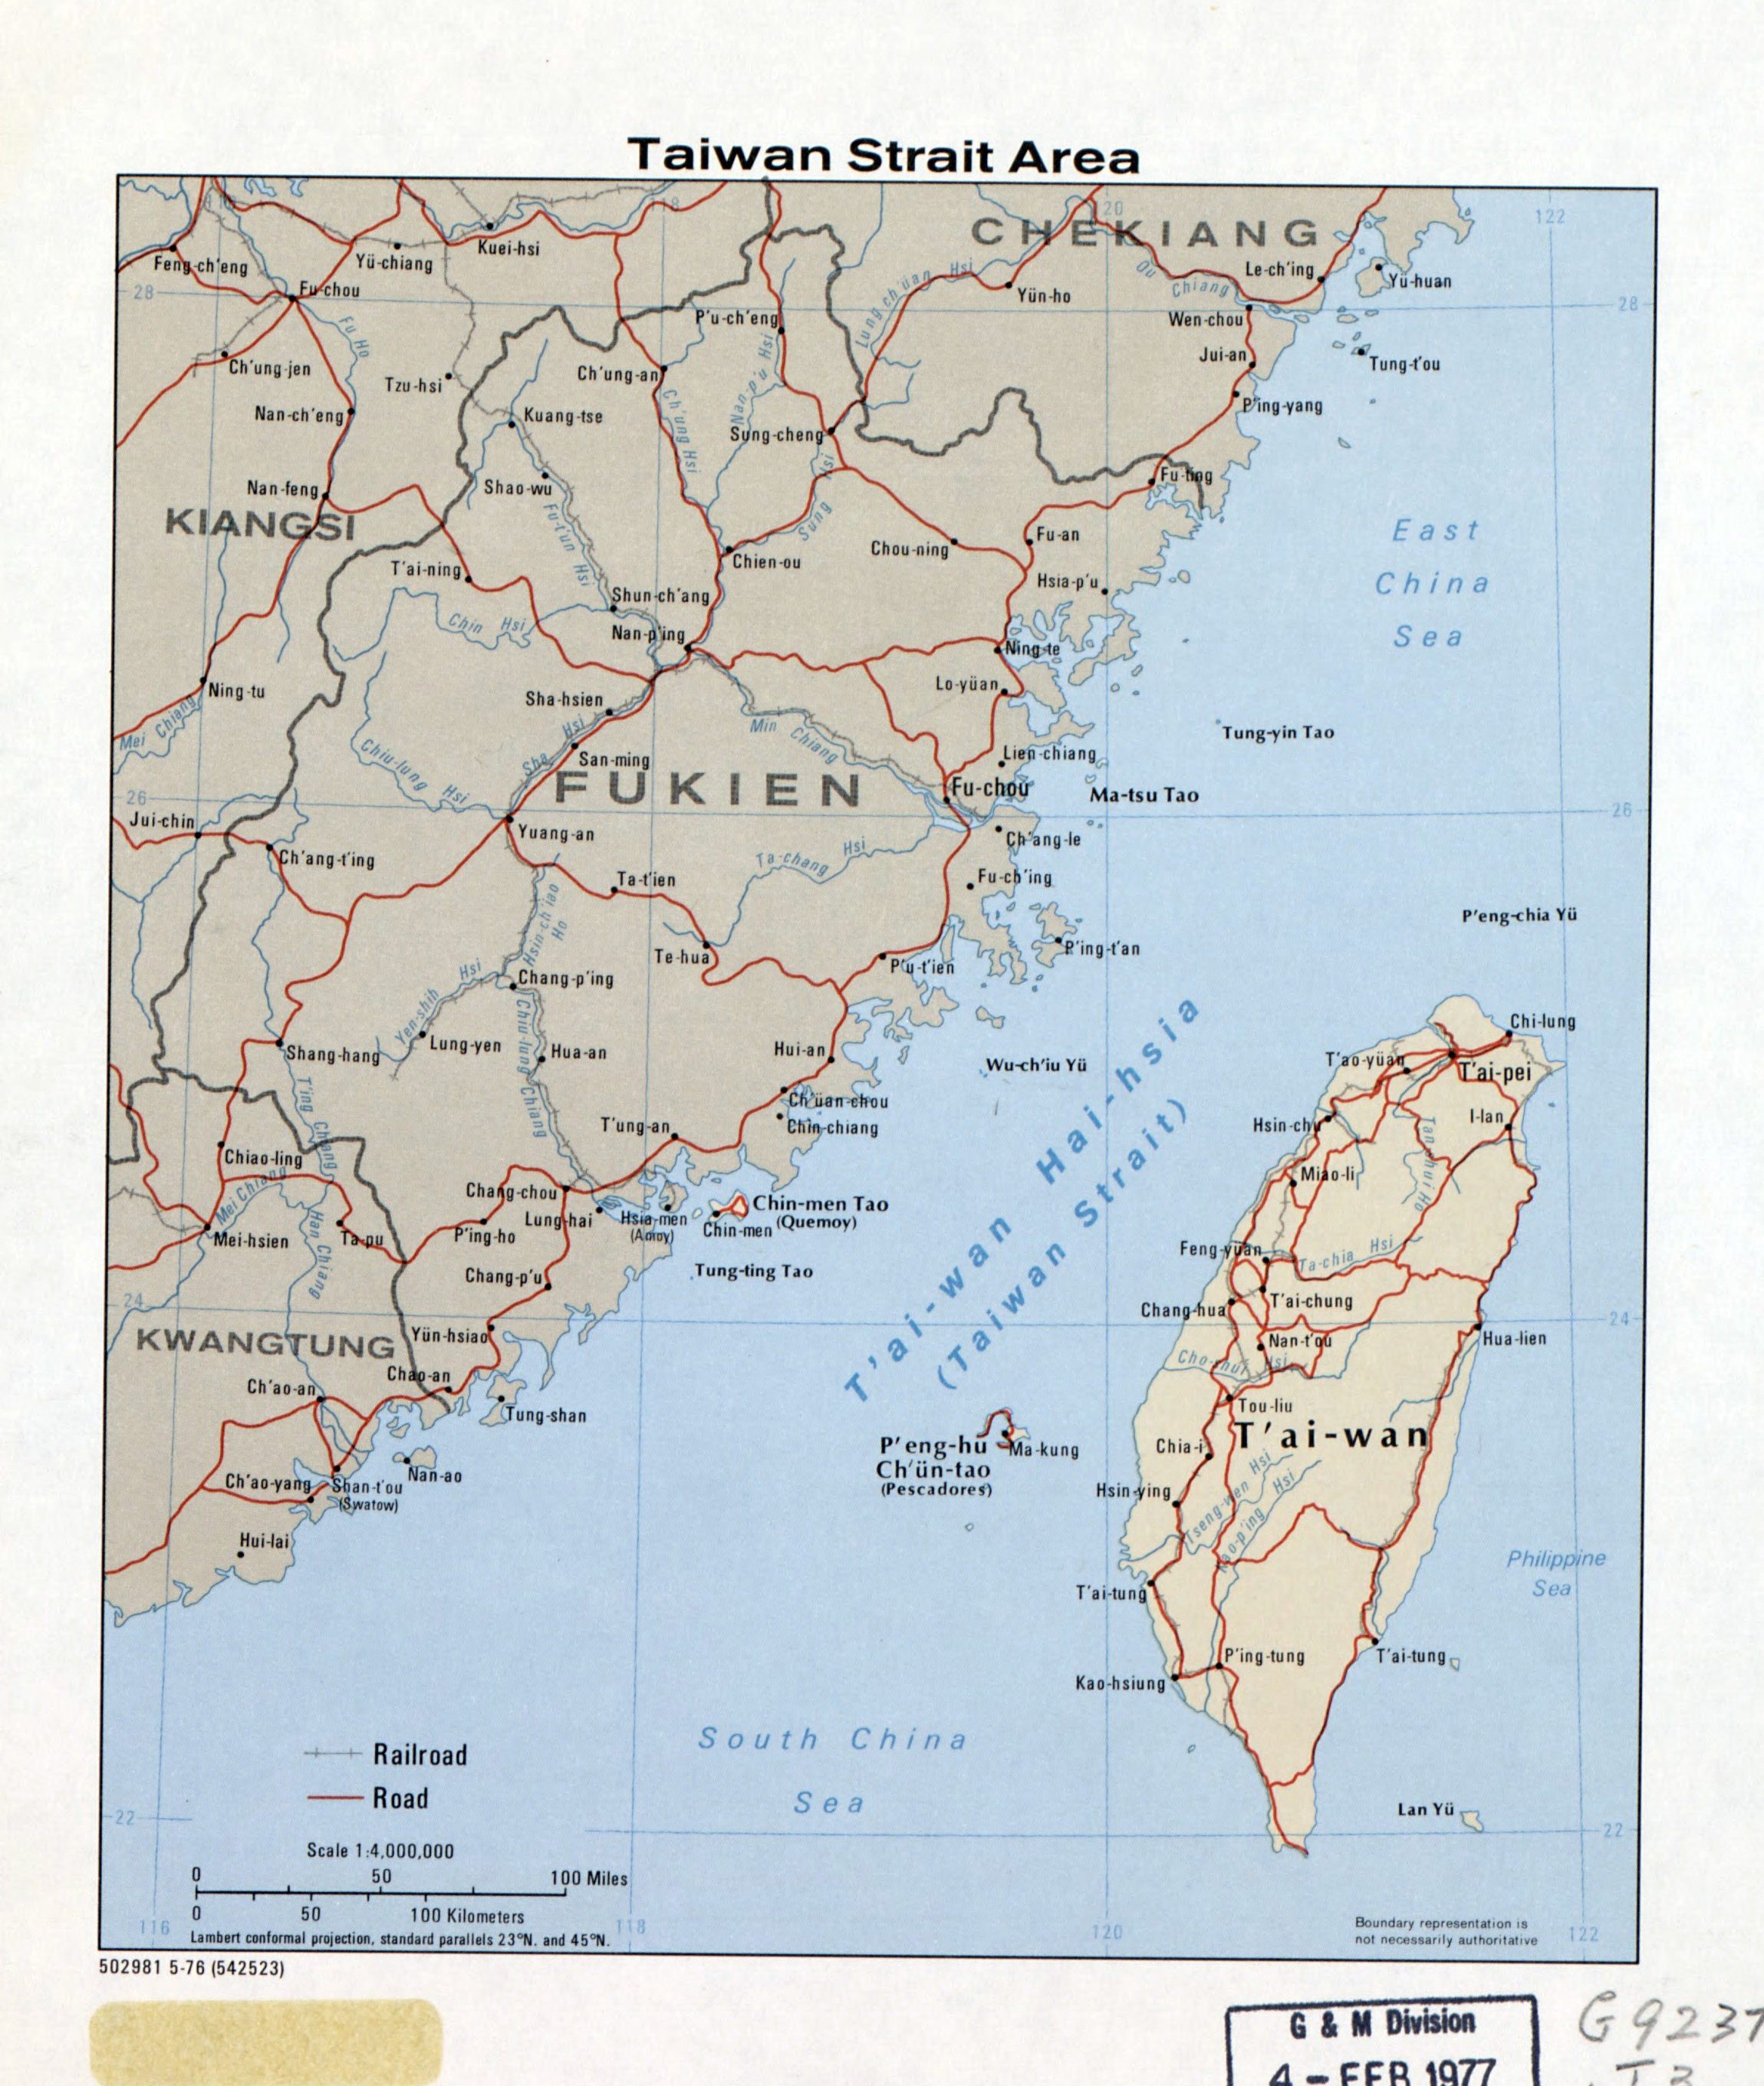 Taiwan Strait Map Large detailed map of Taiwan Strait Area with roads, railroads and